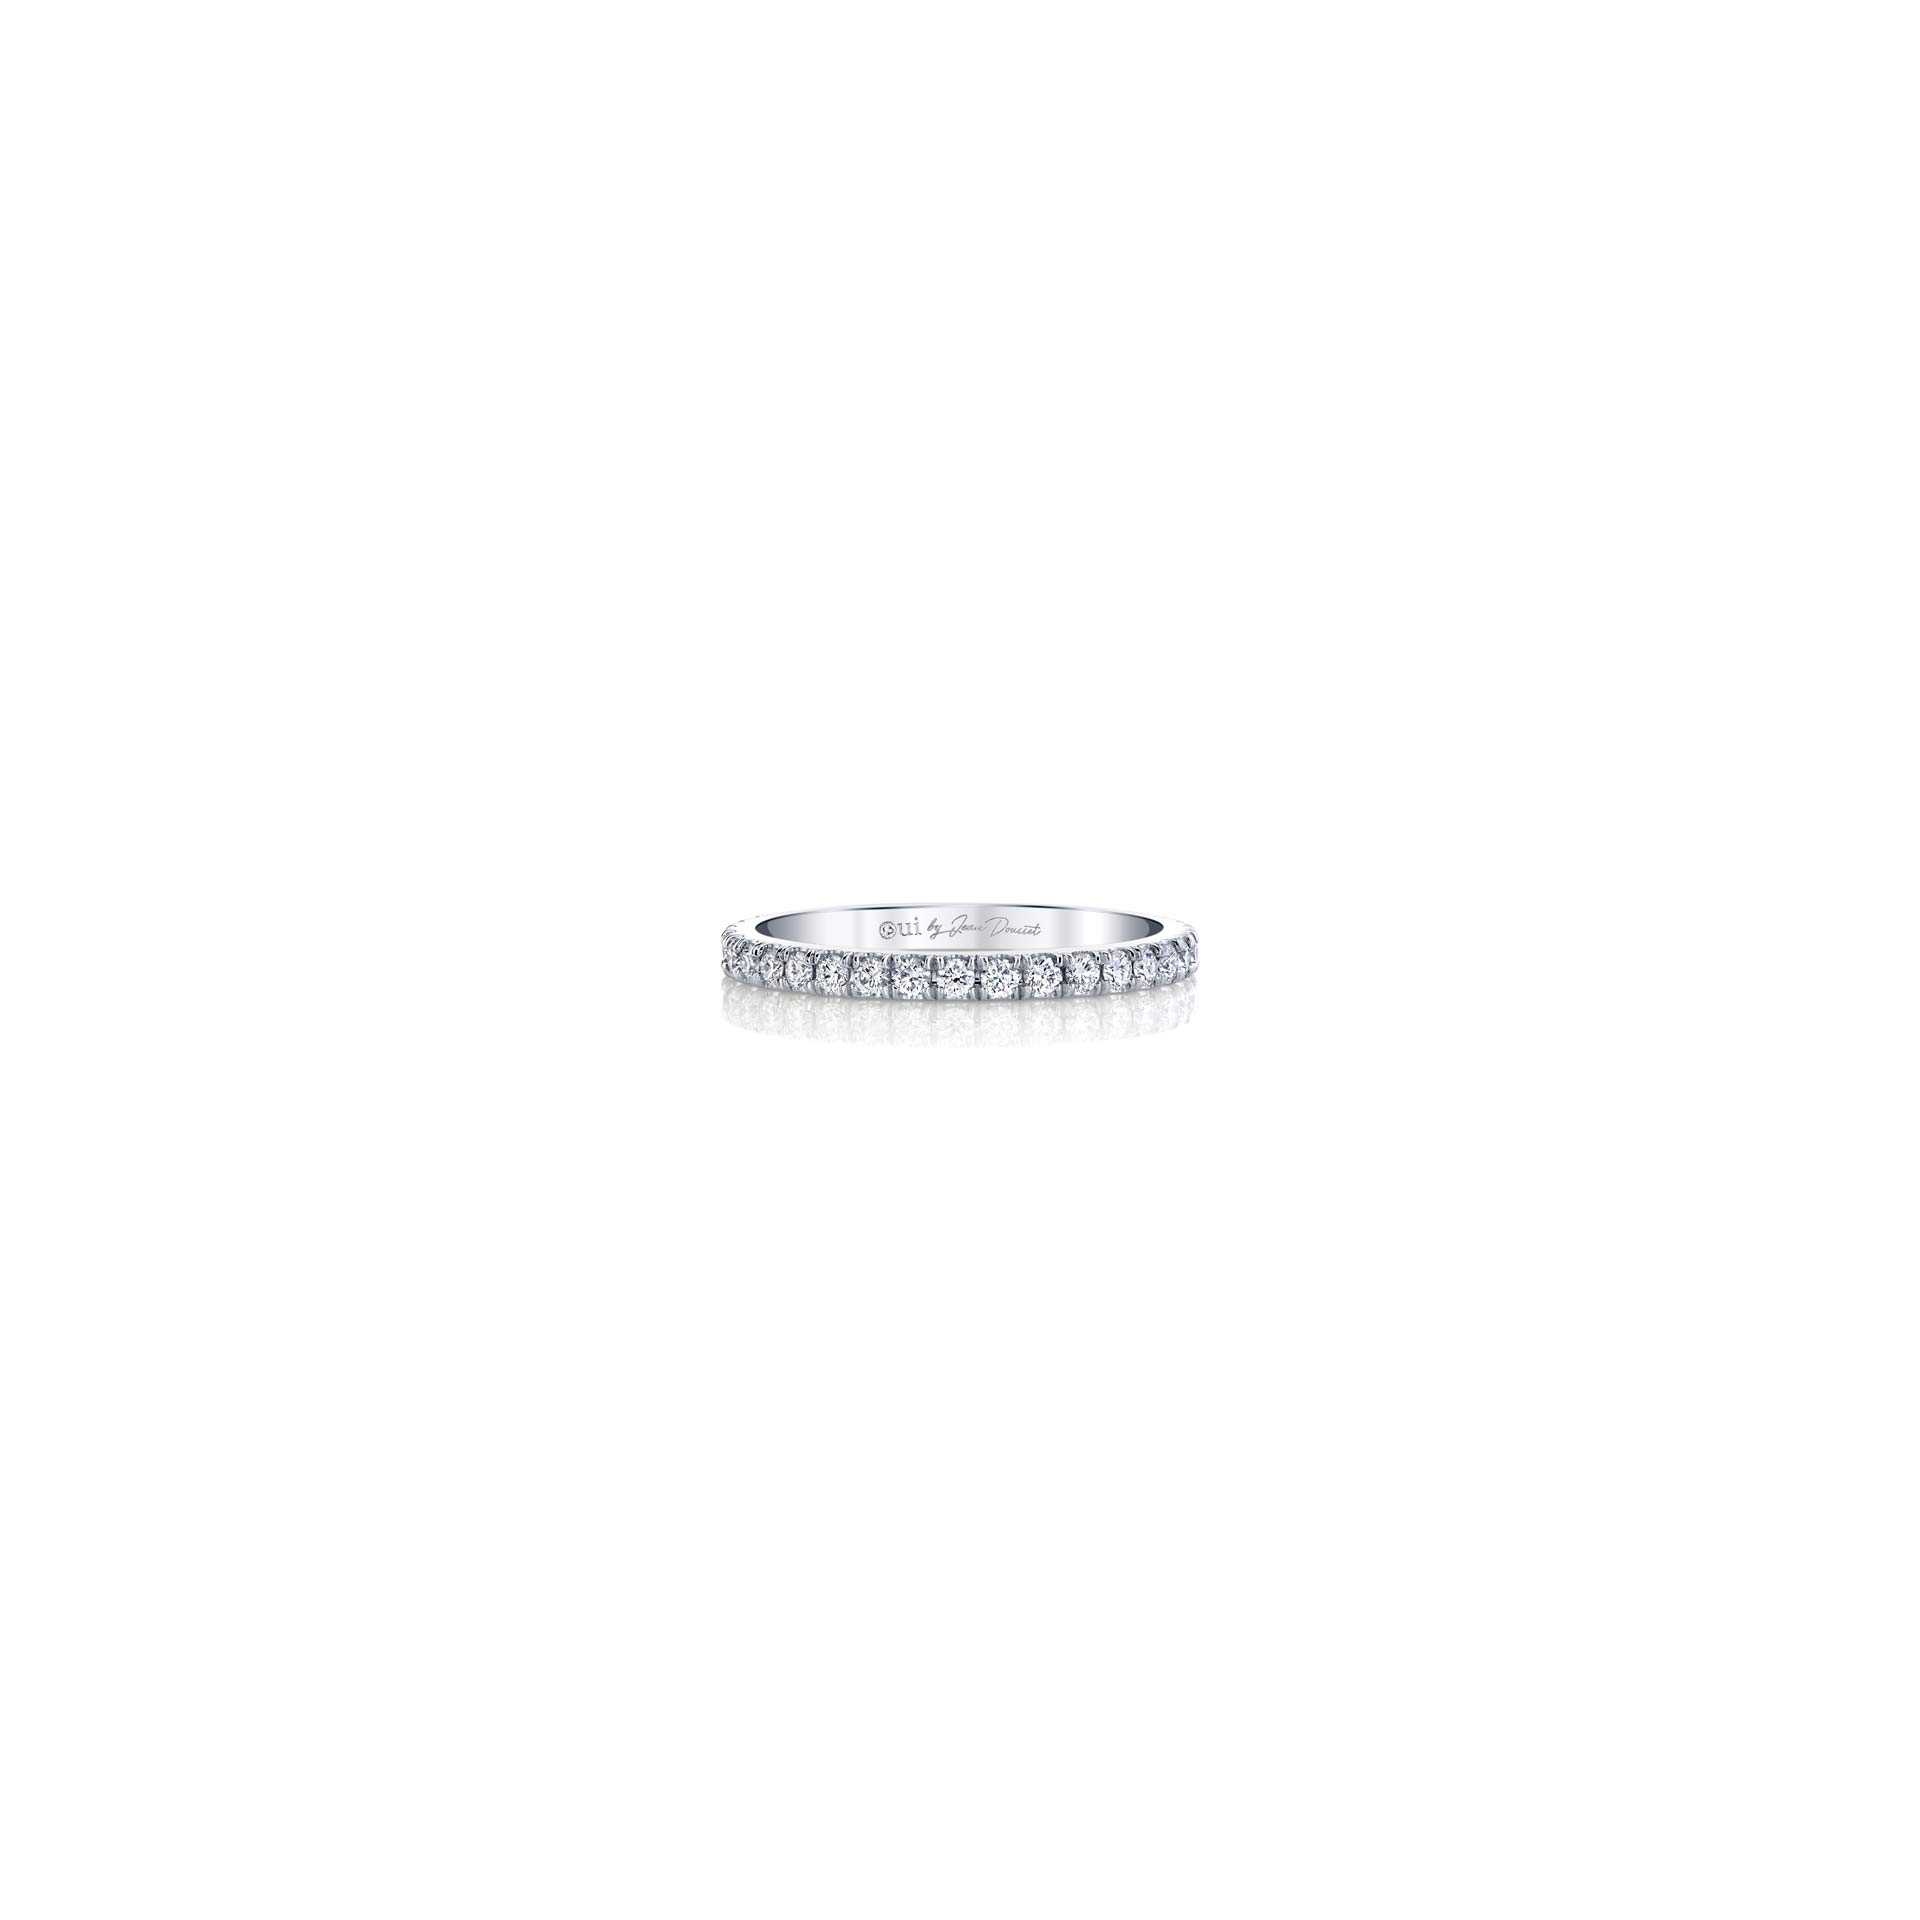 Eloise Women's Wedding Band with diamond pavé in 18k White Gold Front View by Oui by Jean Dousset